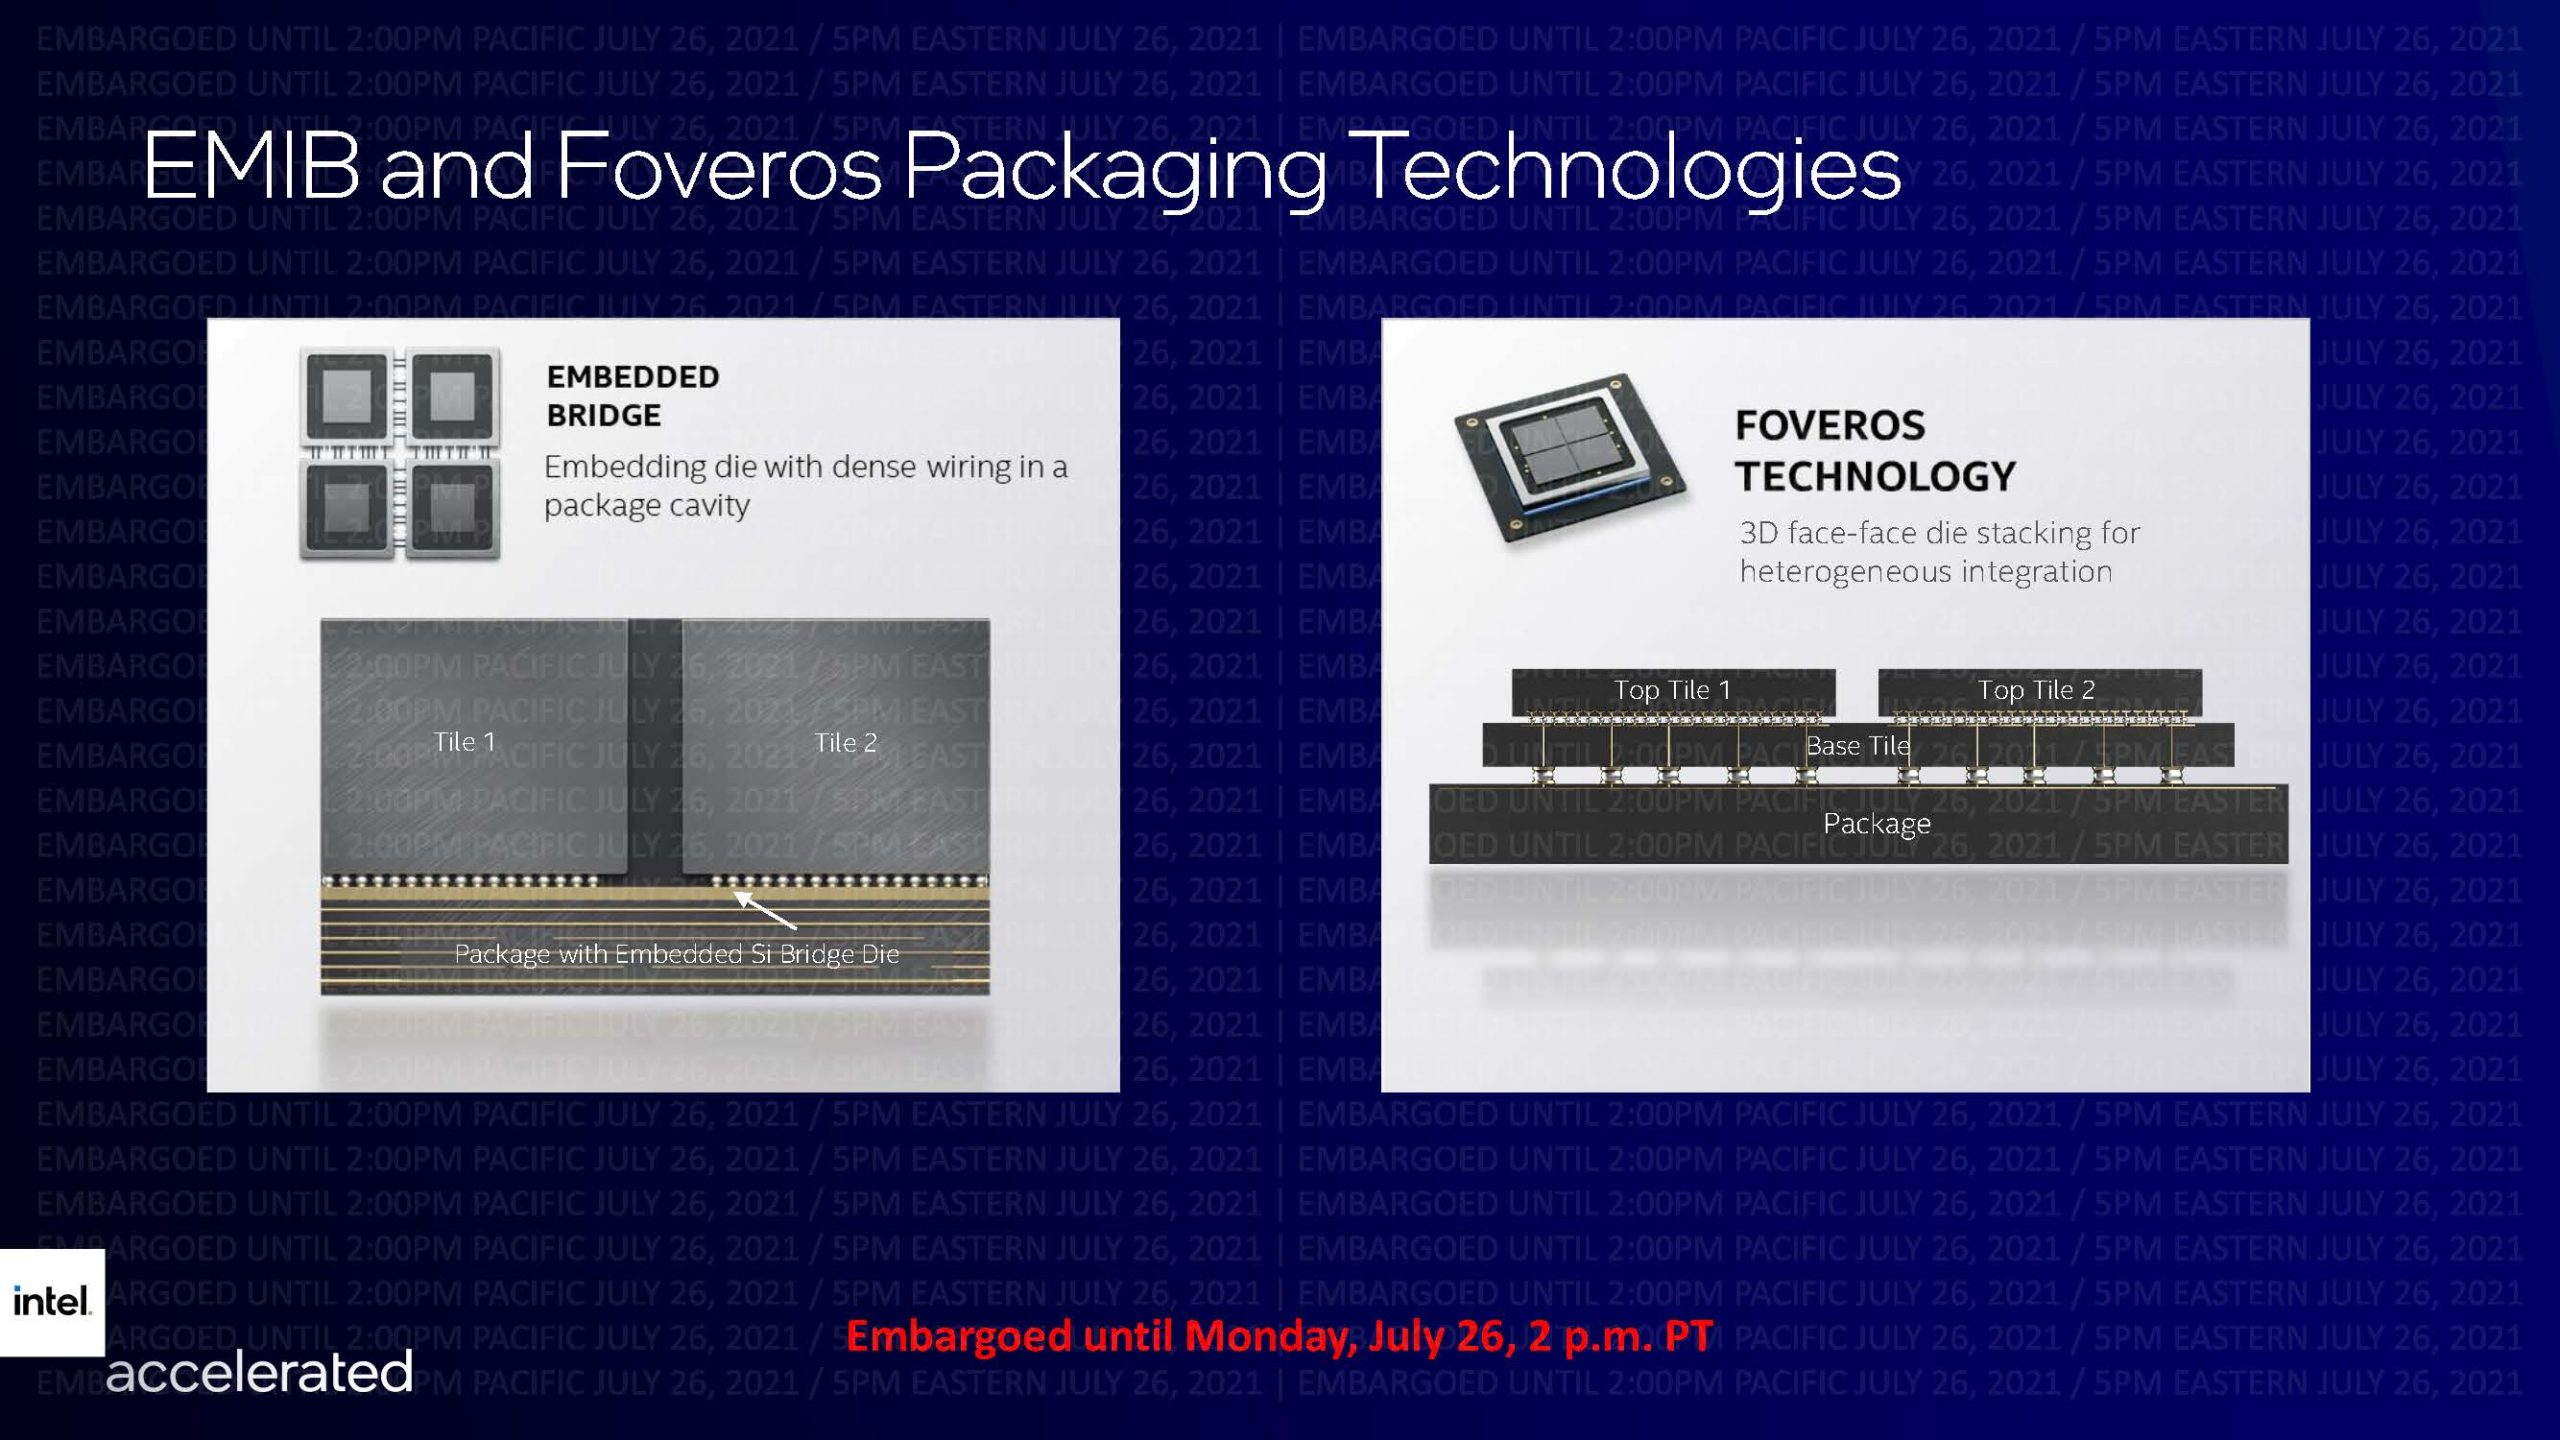 Intel Accelerated EMIB And Foveros Packaging